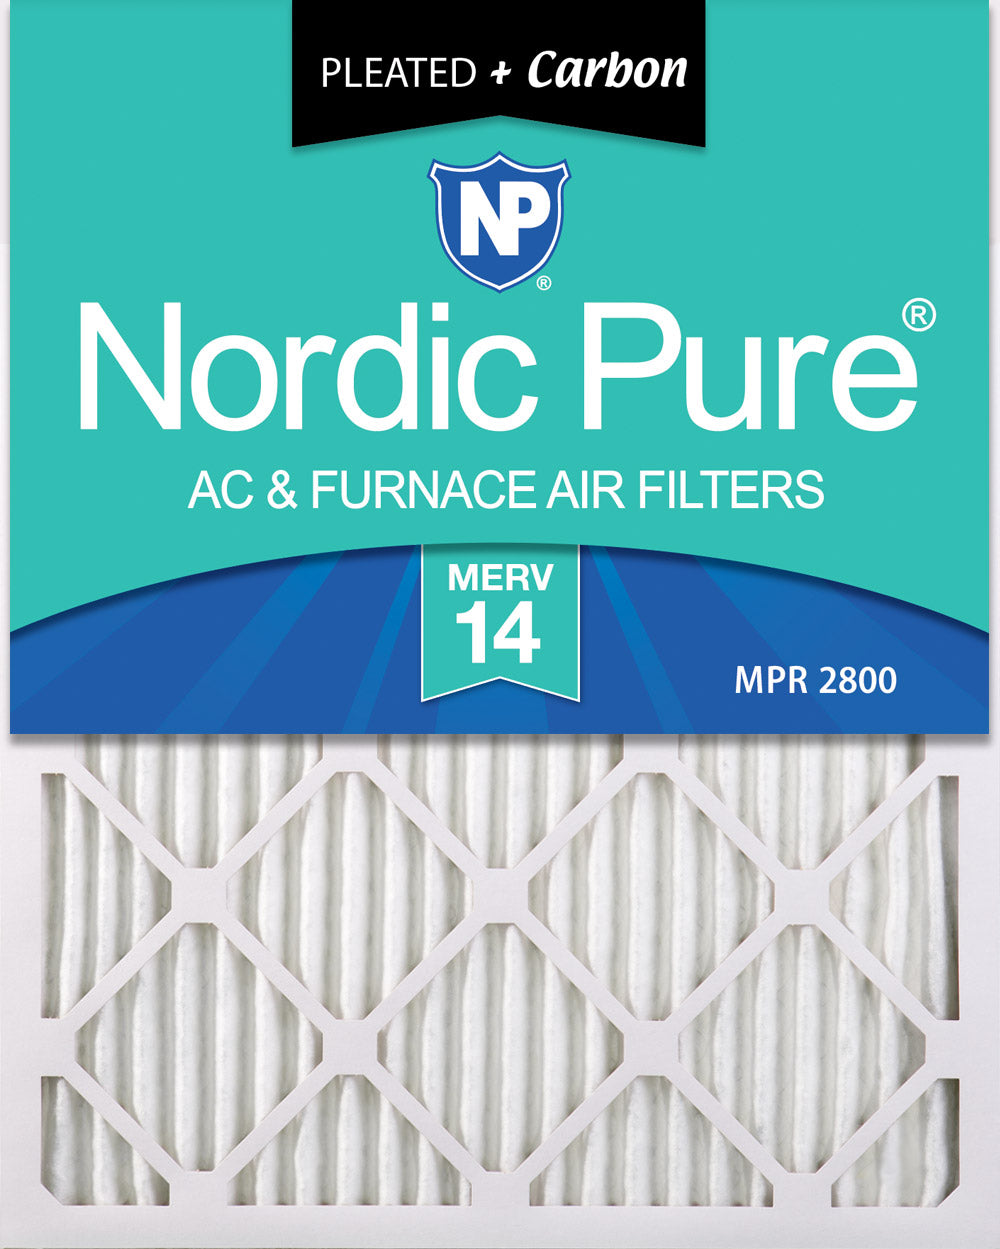 20x24x1 Pleated Air Filters MERV 14 Plus Carbon 6 Pack